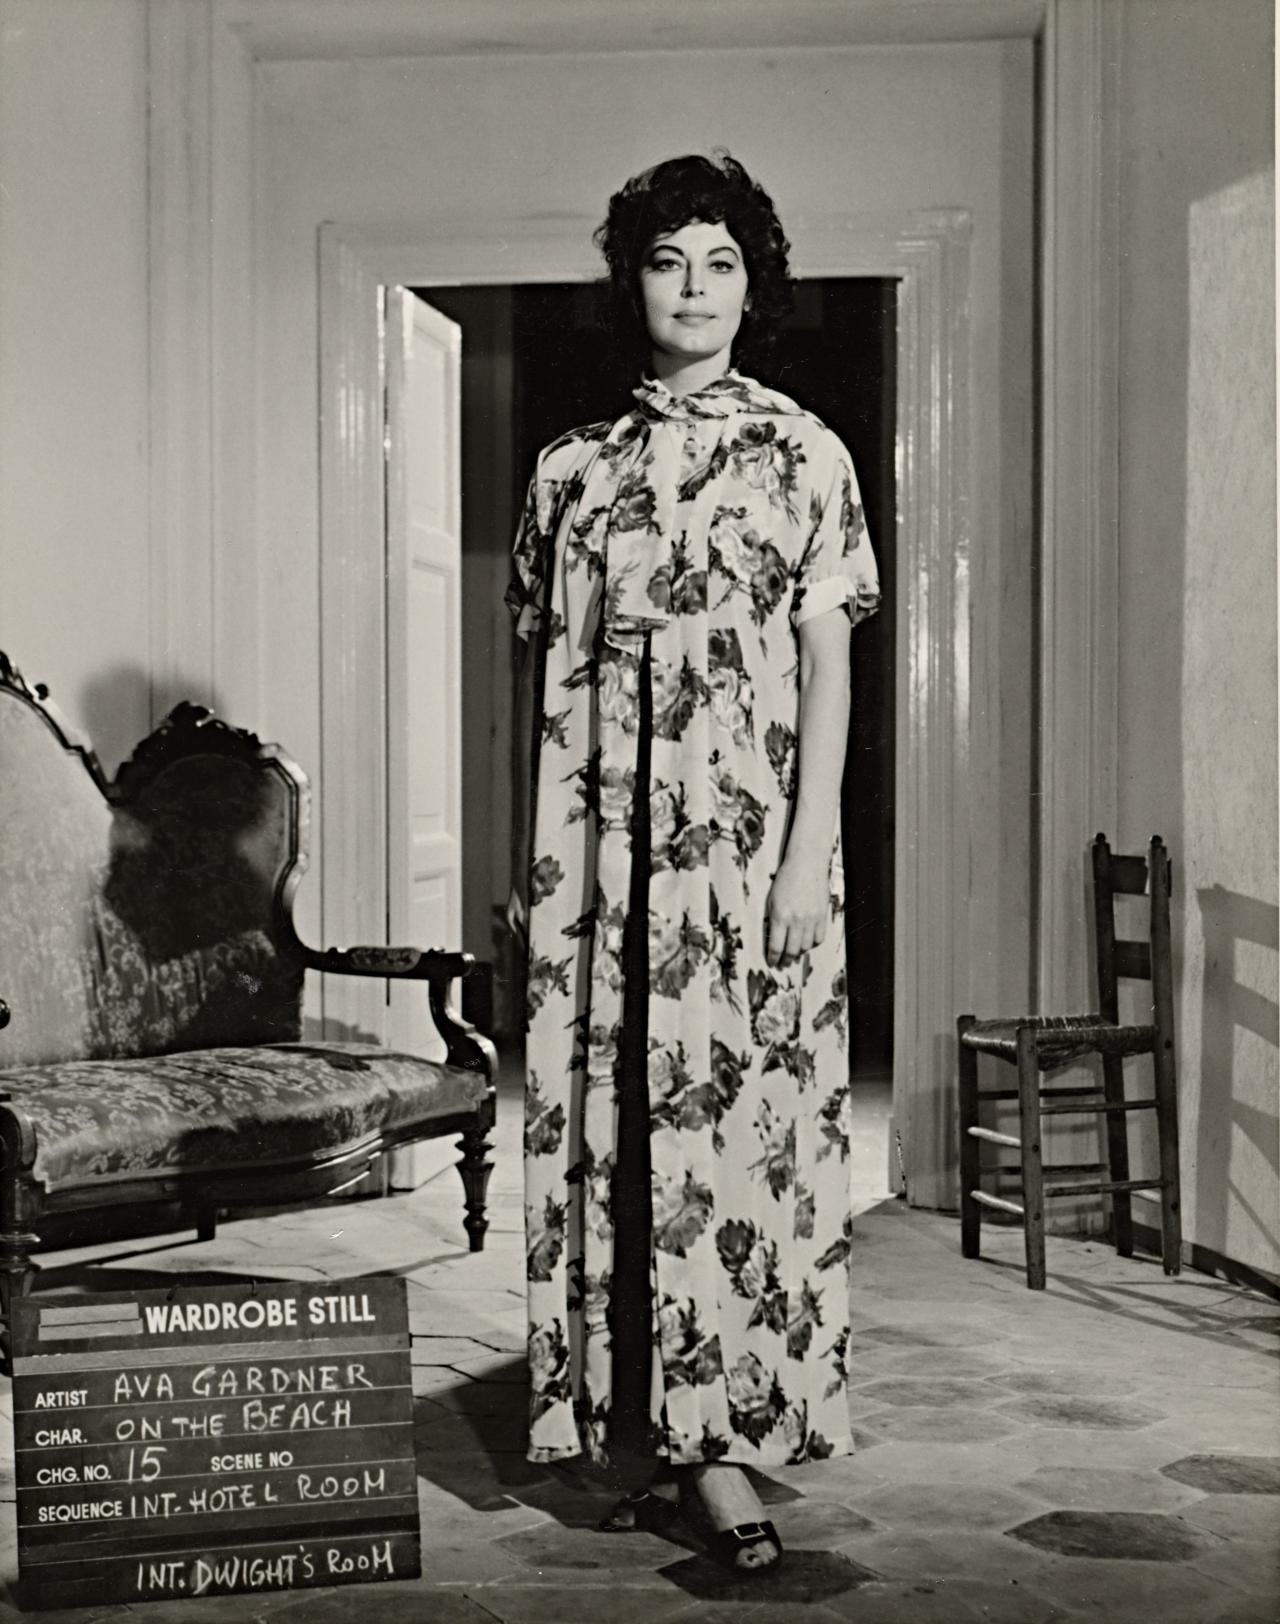 No title (Ava Gardner in wardrobe still for On the beach: Hotel room and Dwight's room)